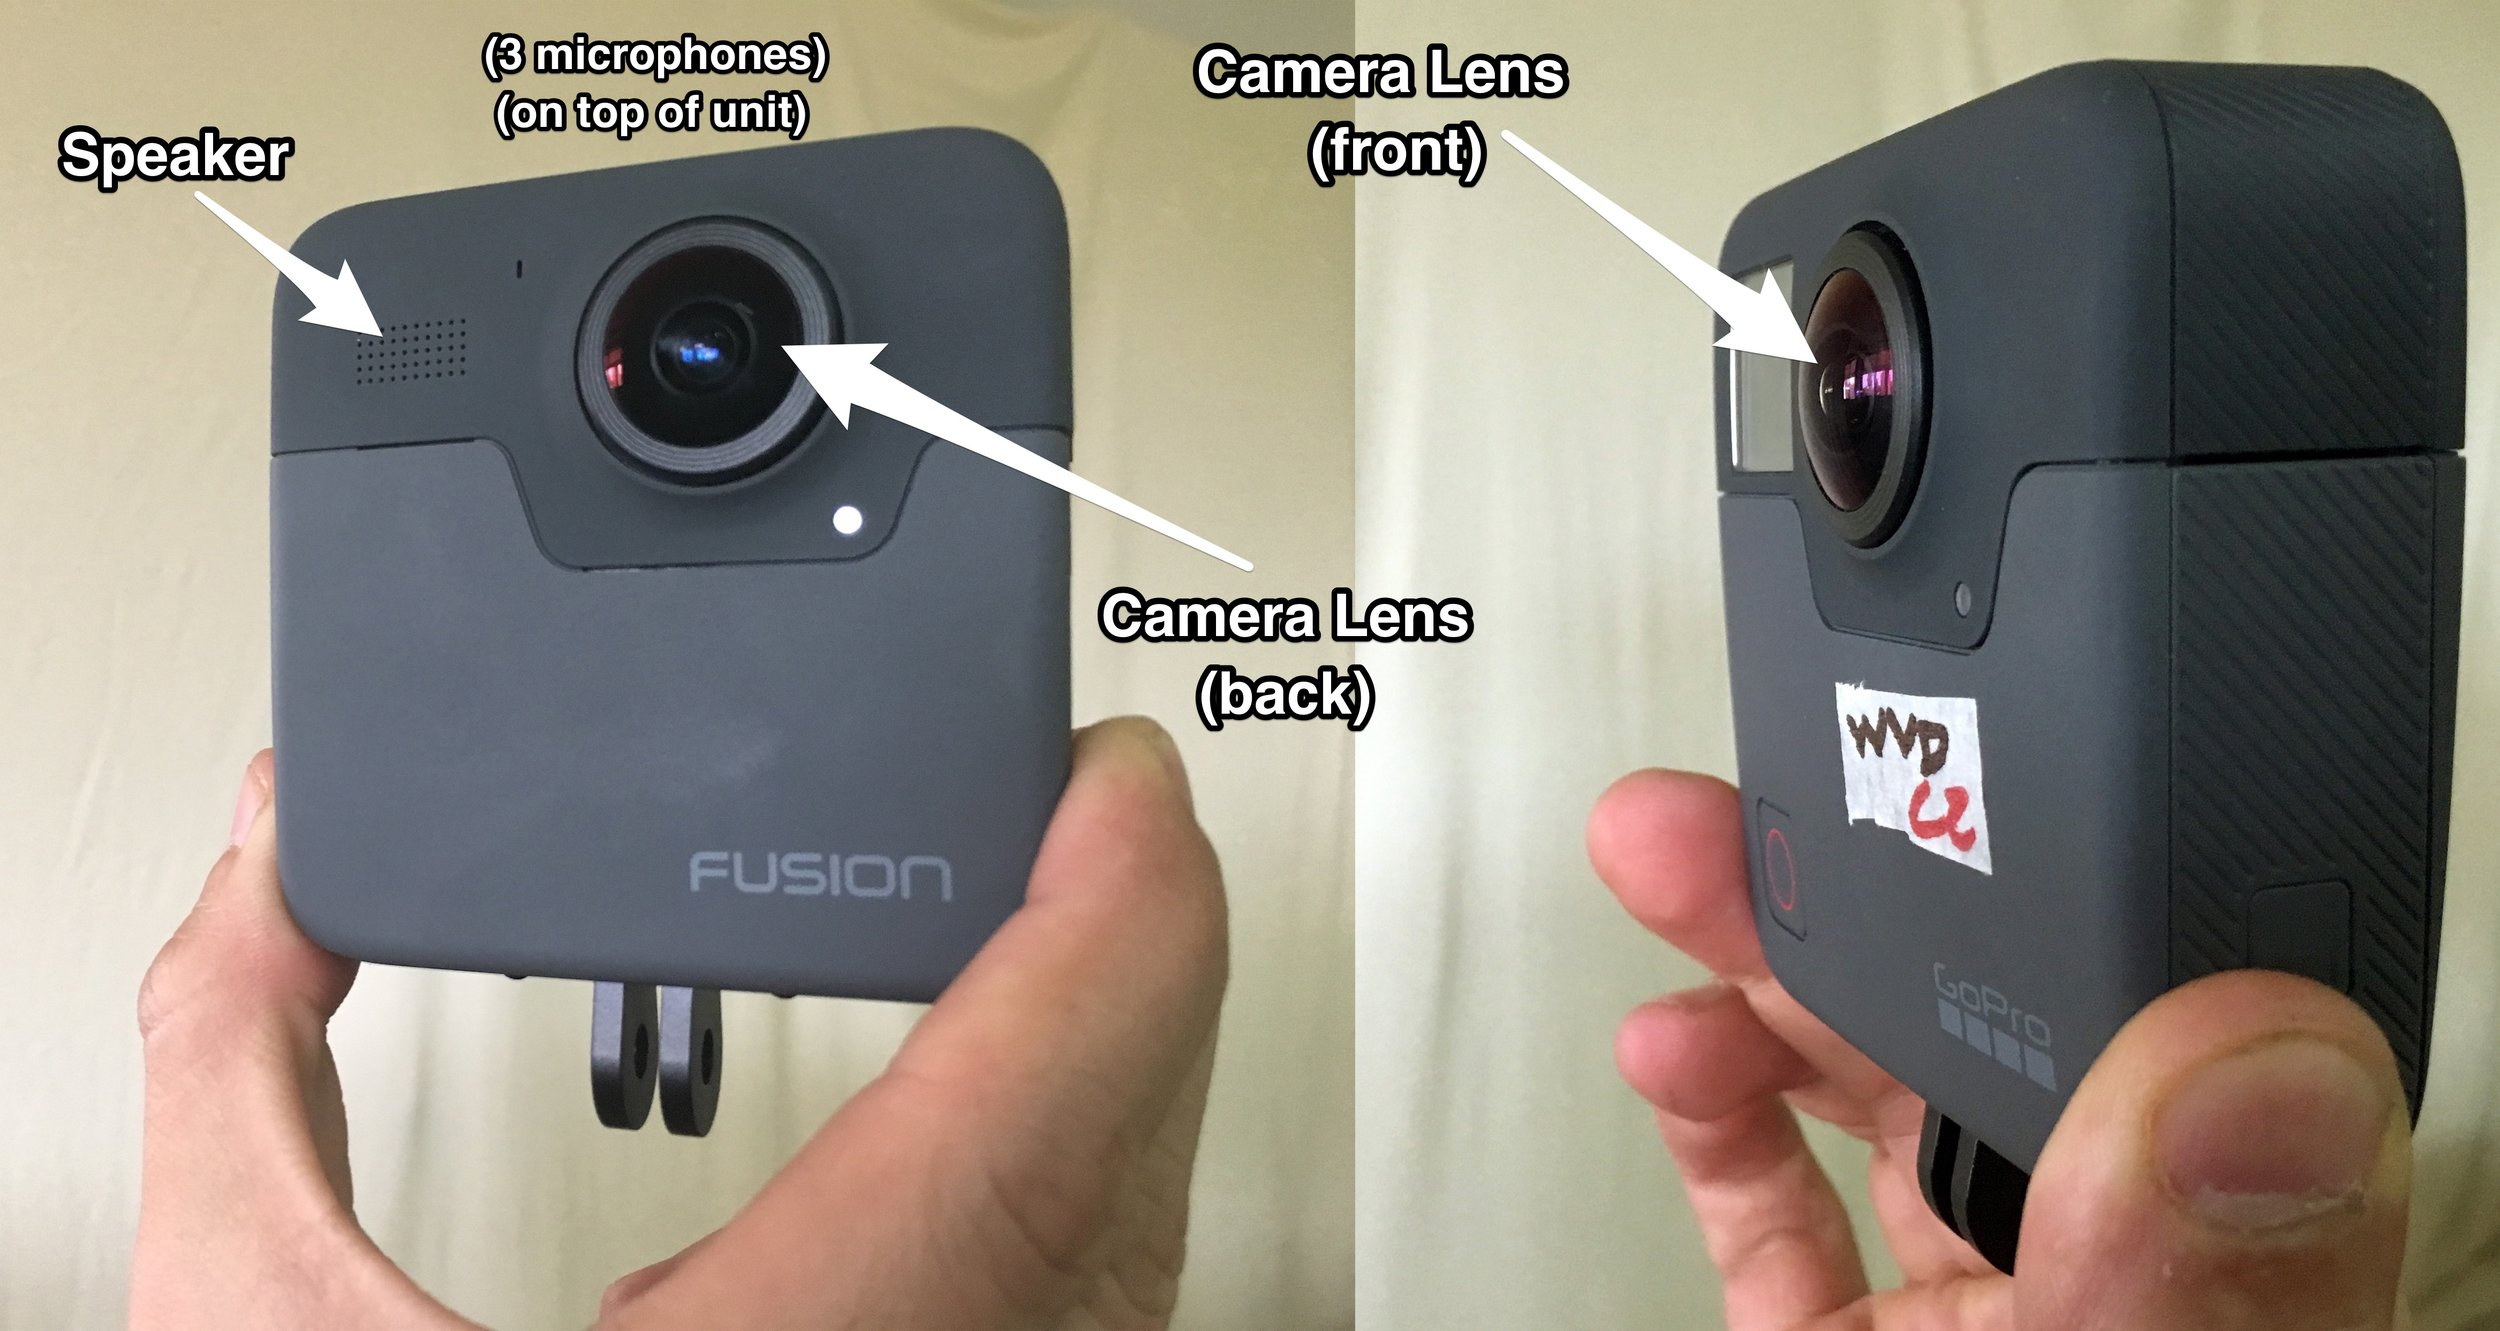 Lens, speaker, and mic placement on the GoPro Fusion 360 video camera.